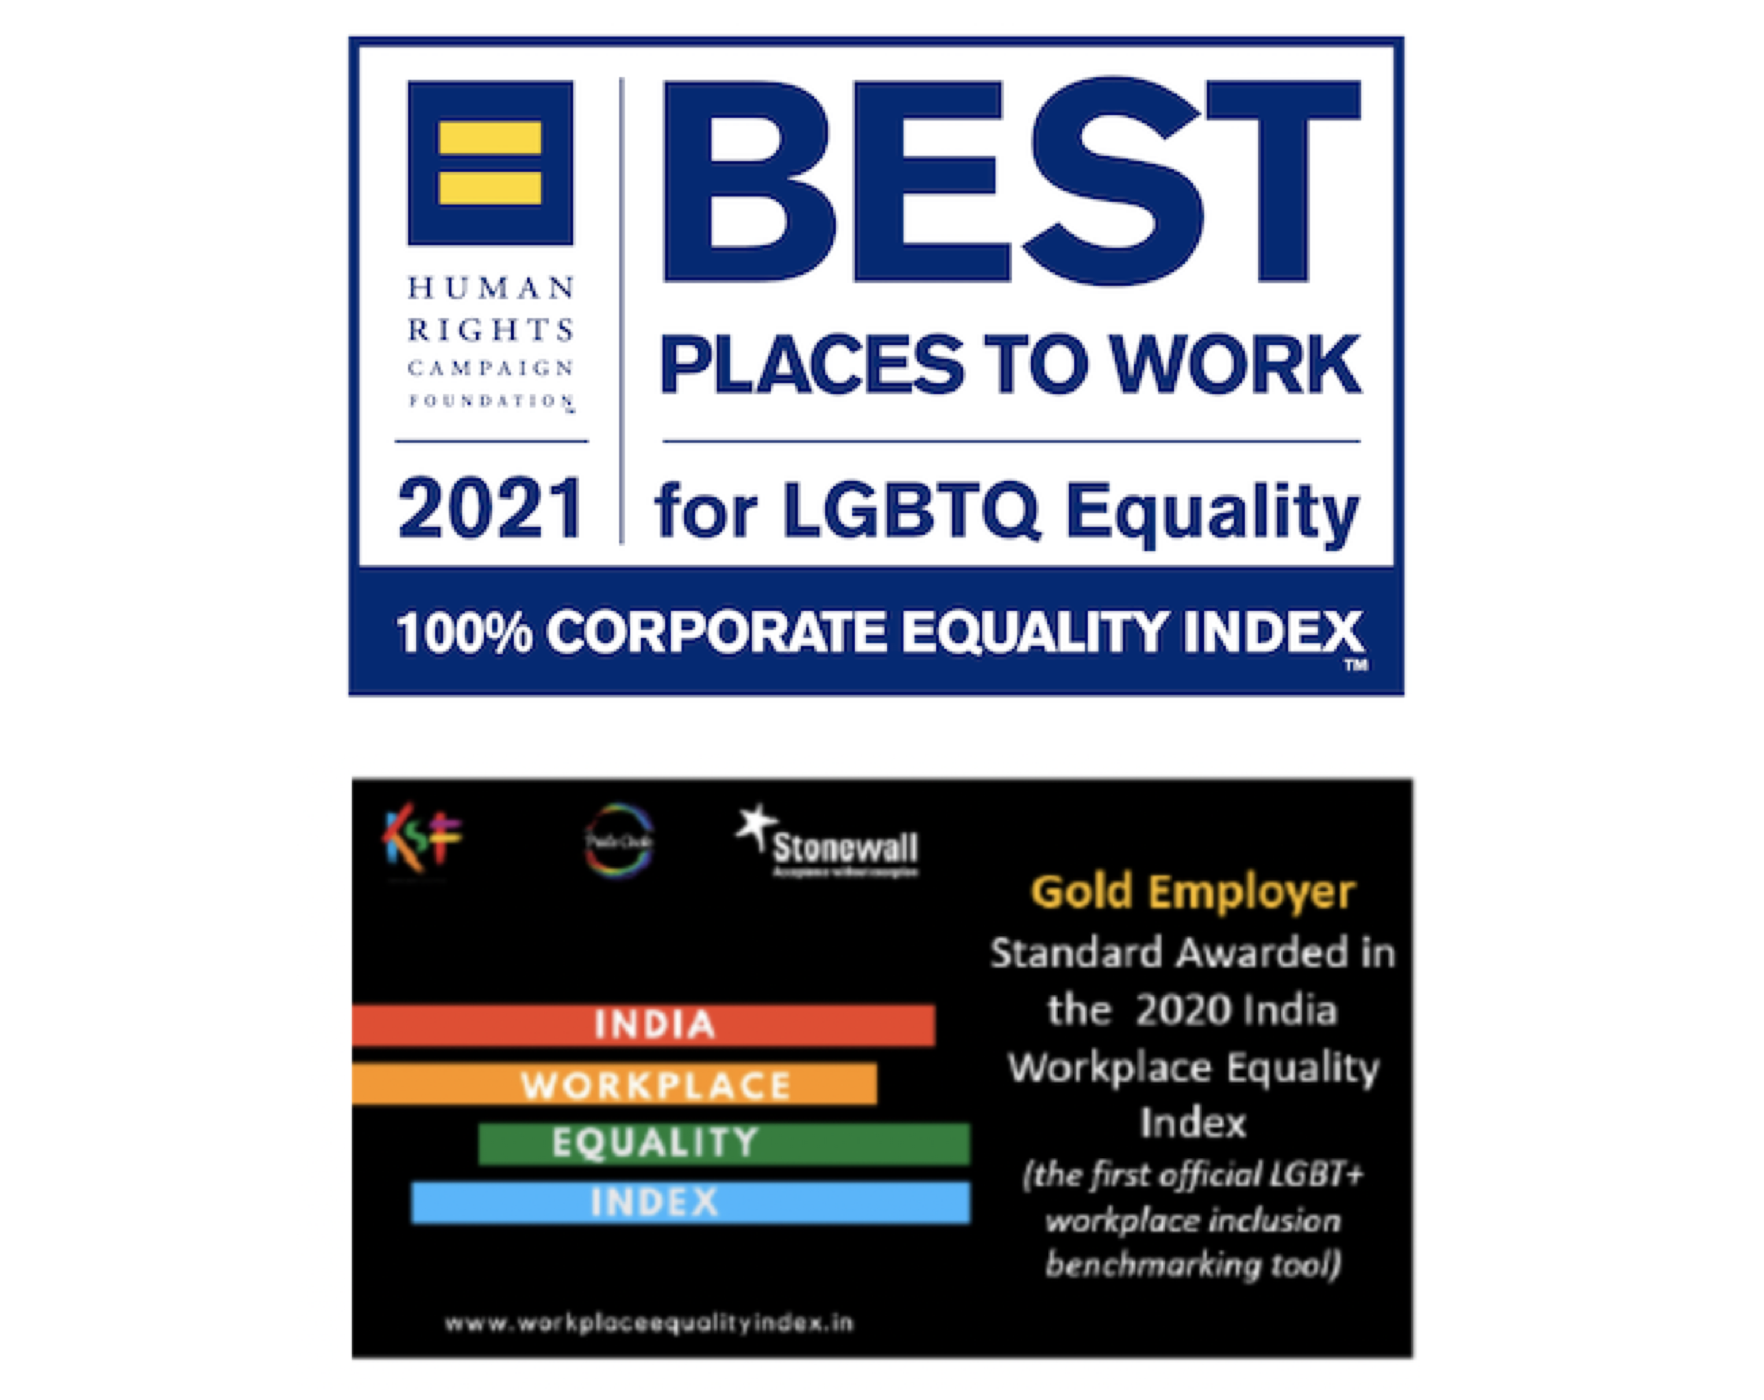 Awards for being a Best Place to Work for LGBTQ Equality